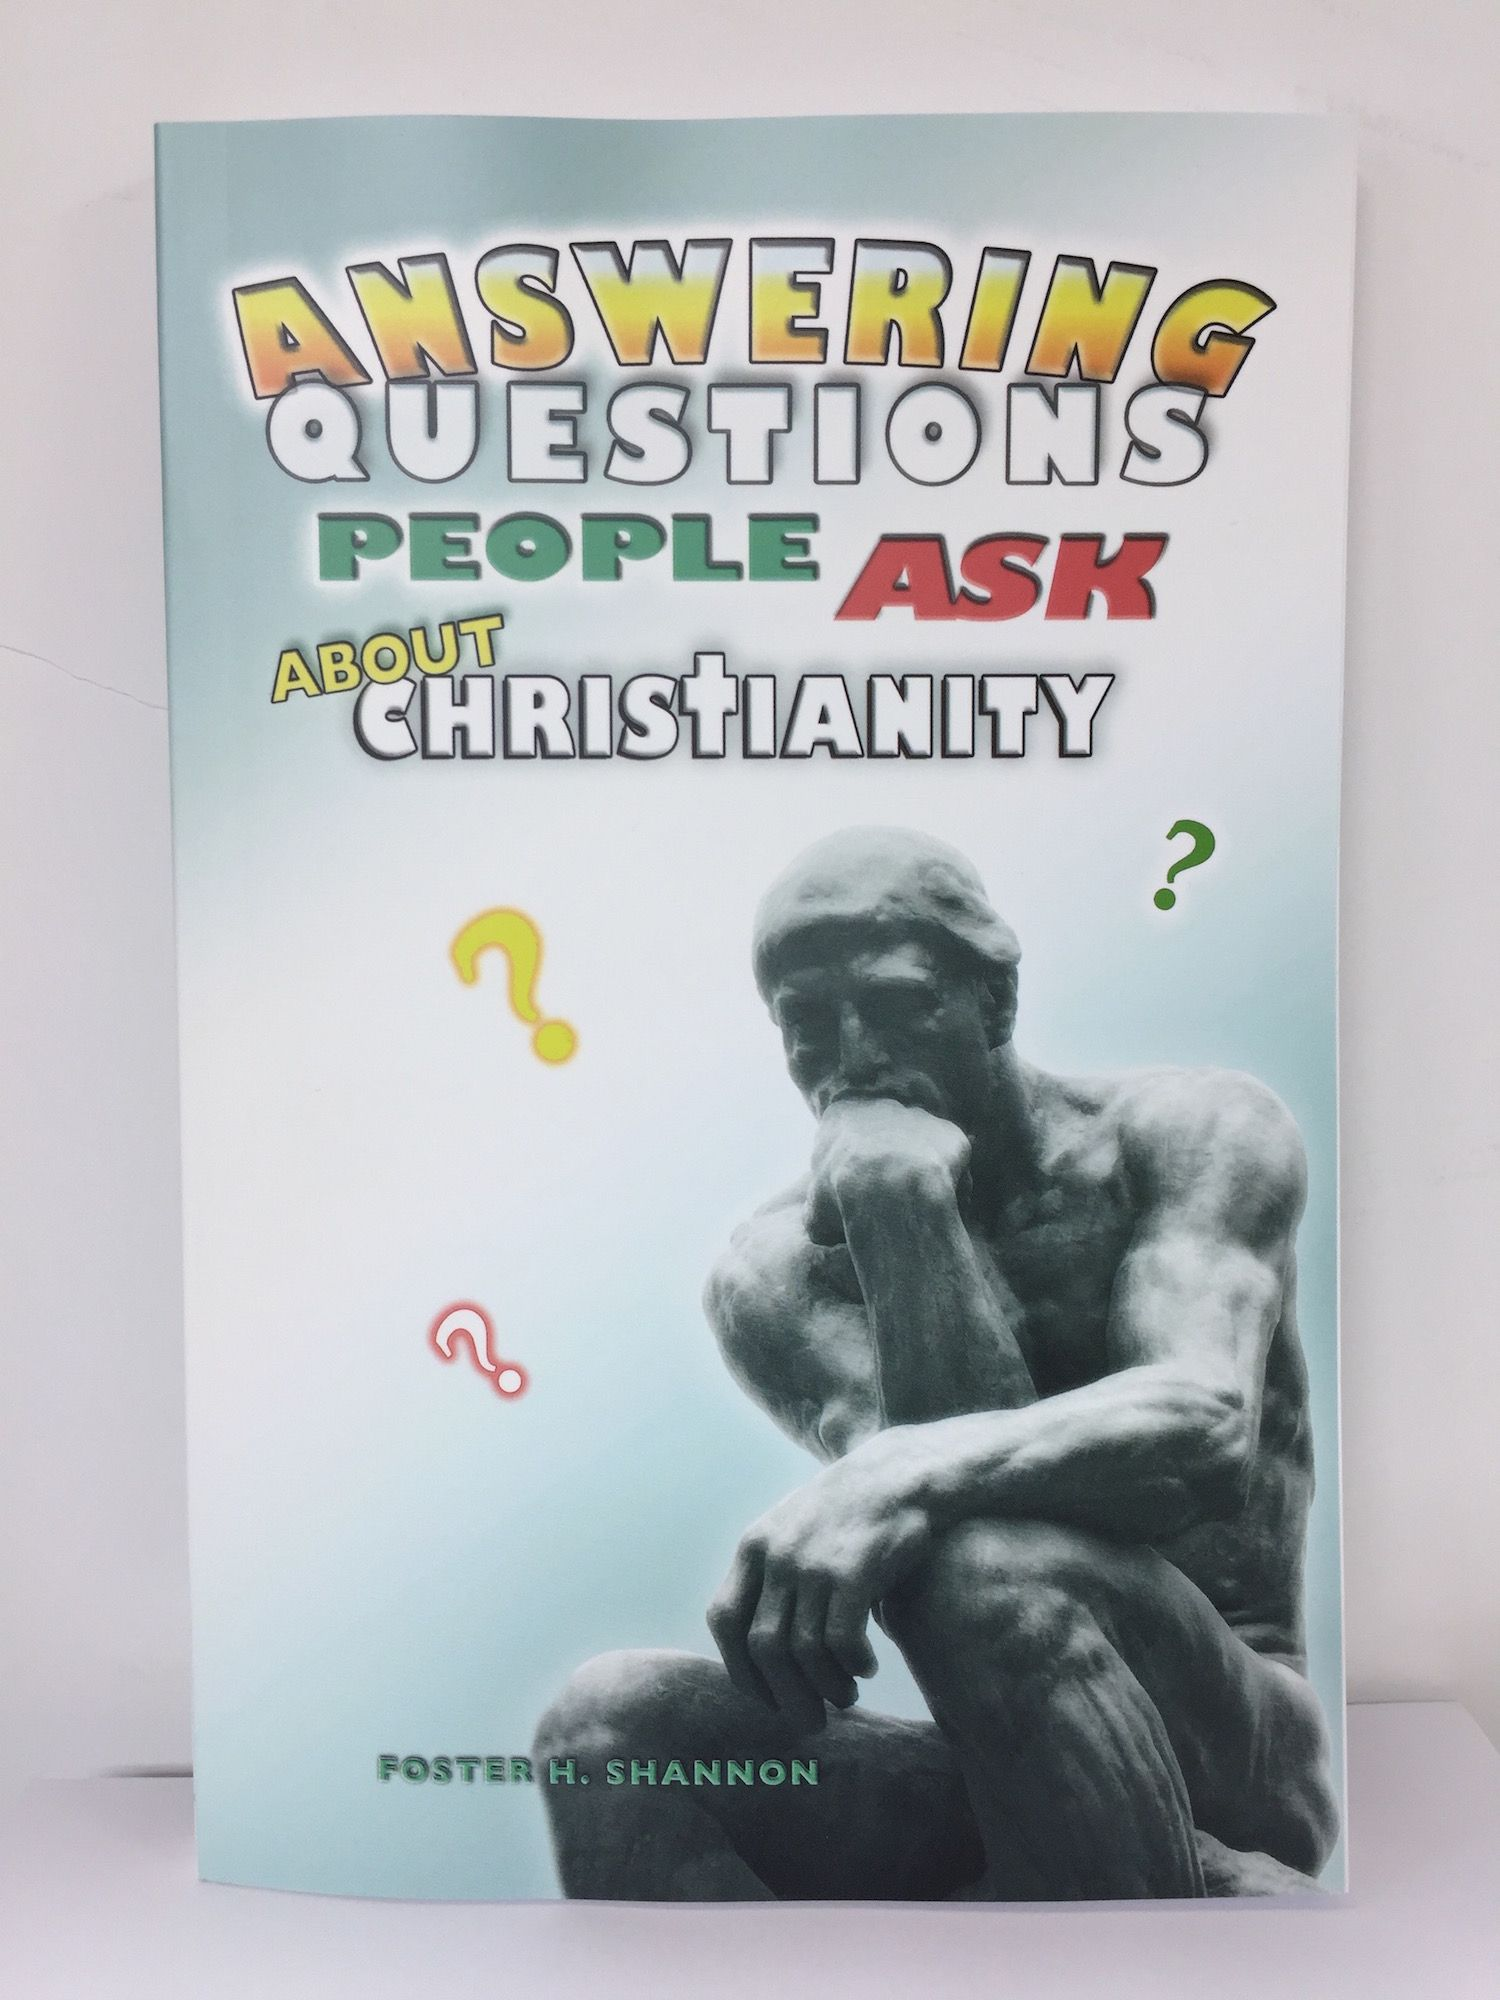 Cook Book Cover Questions : Answering questions people ask about christianity in a